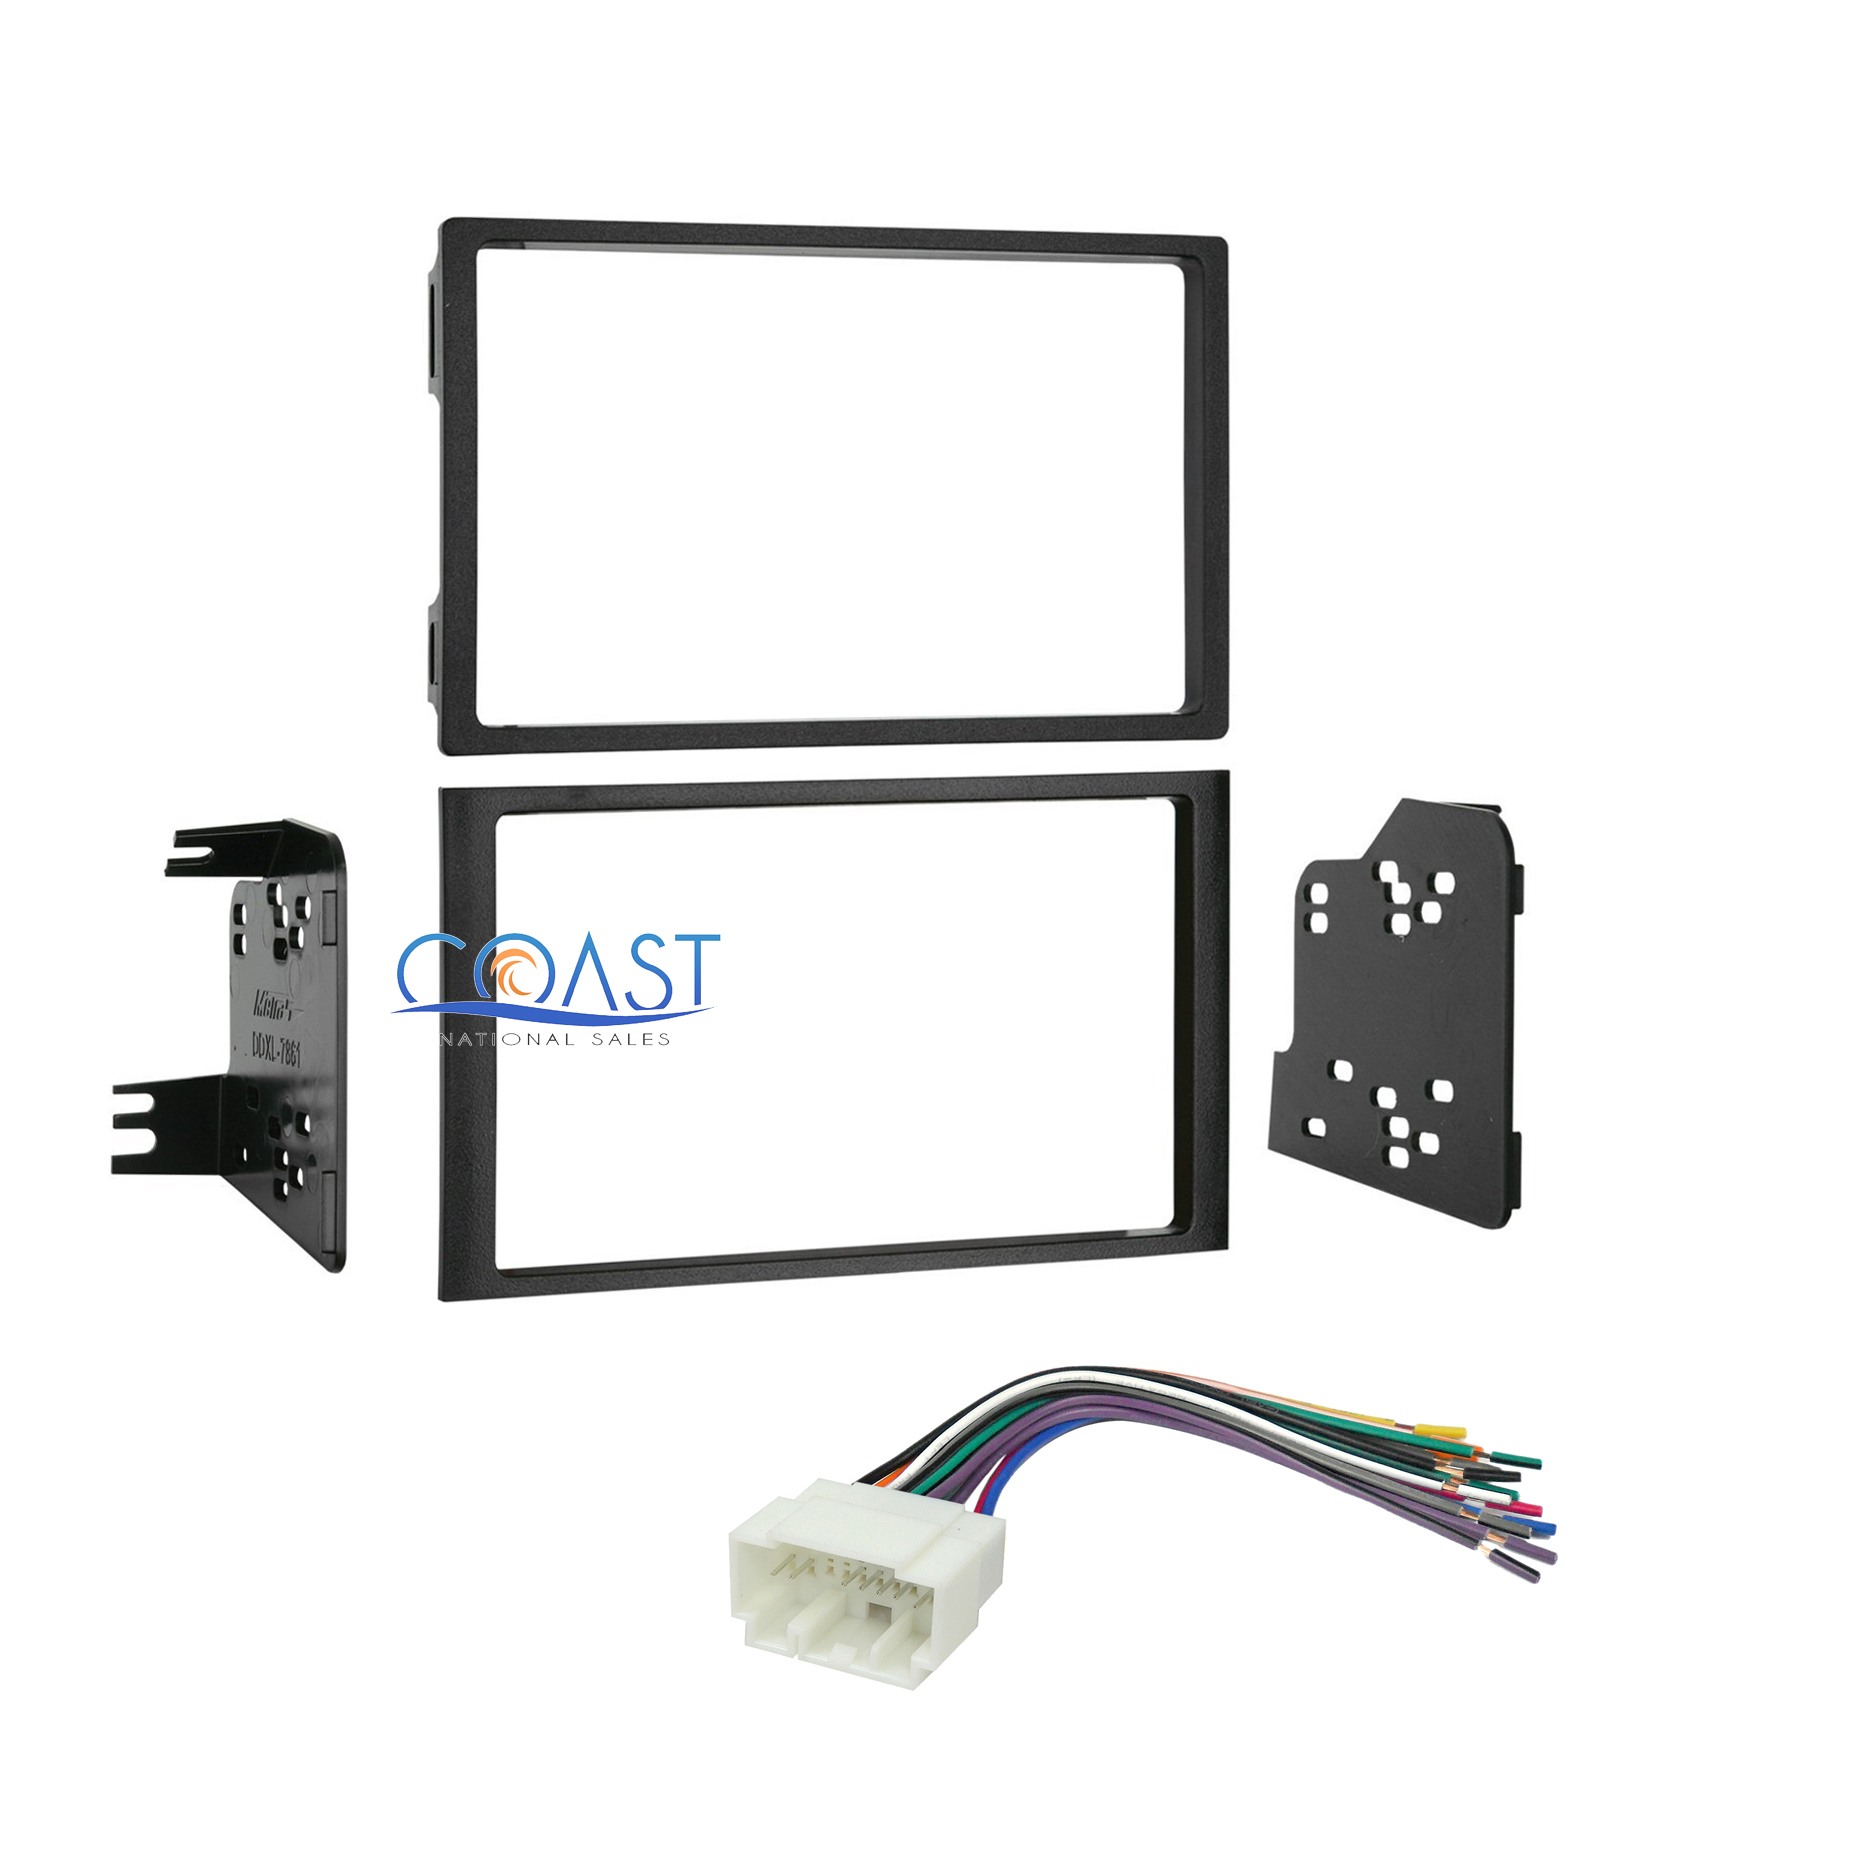 NEW 2003-2005 HONDA PILOT Car Stereo DOUBLE DIN Dash Kit Wire Harness